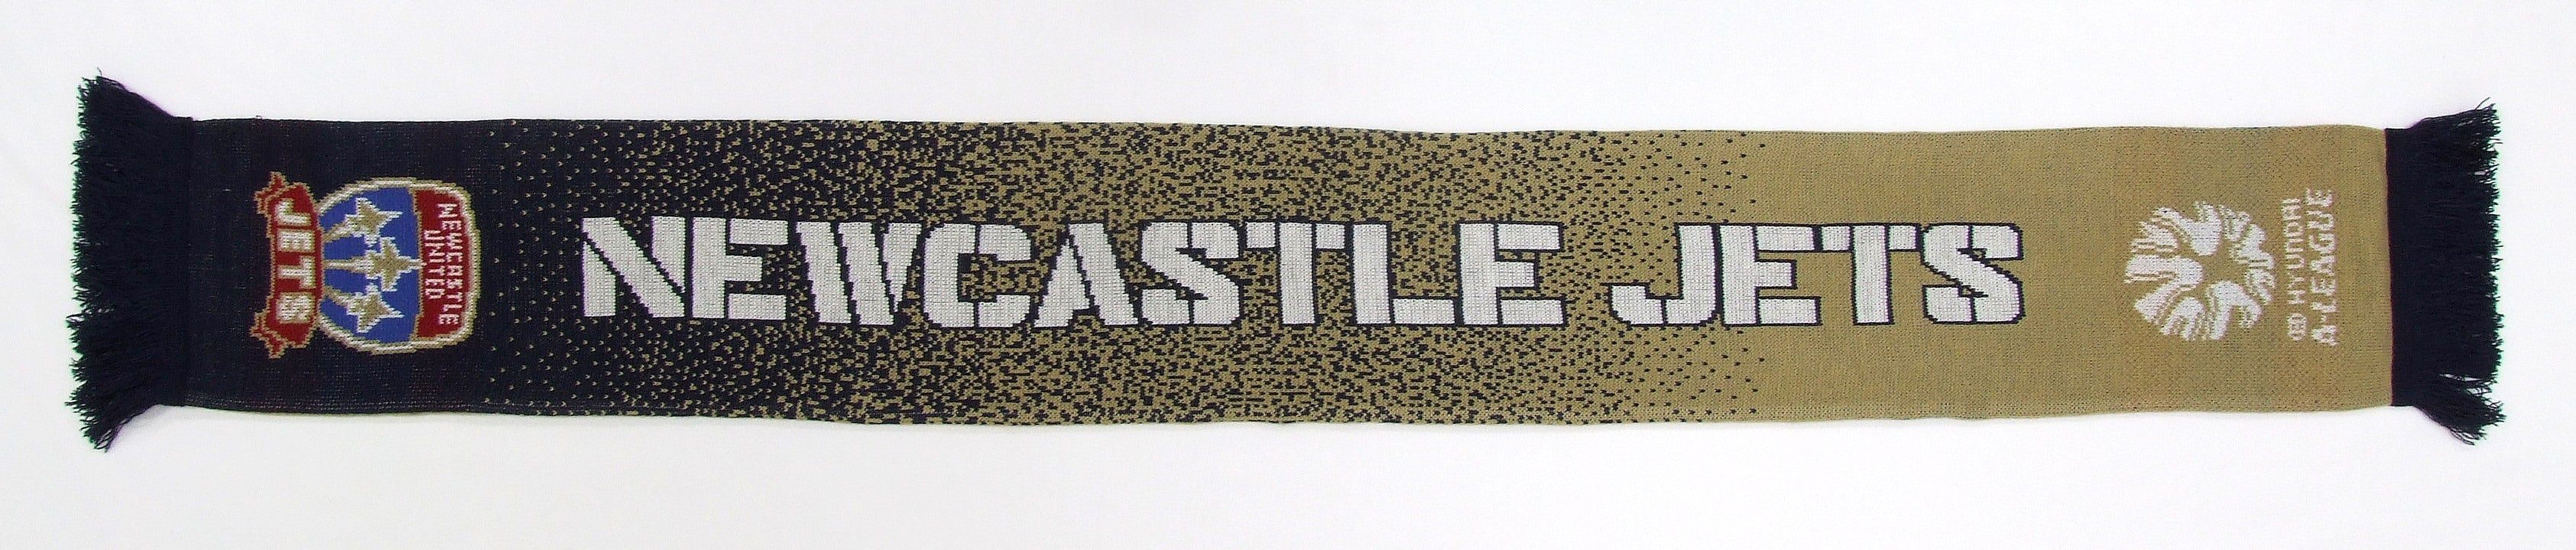 Newcastle Jets F.C. Scarf